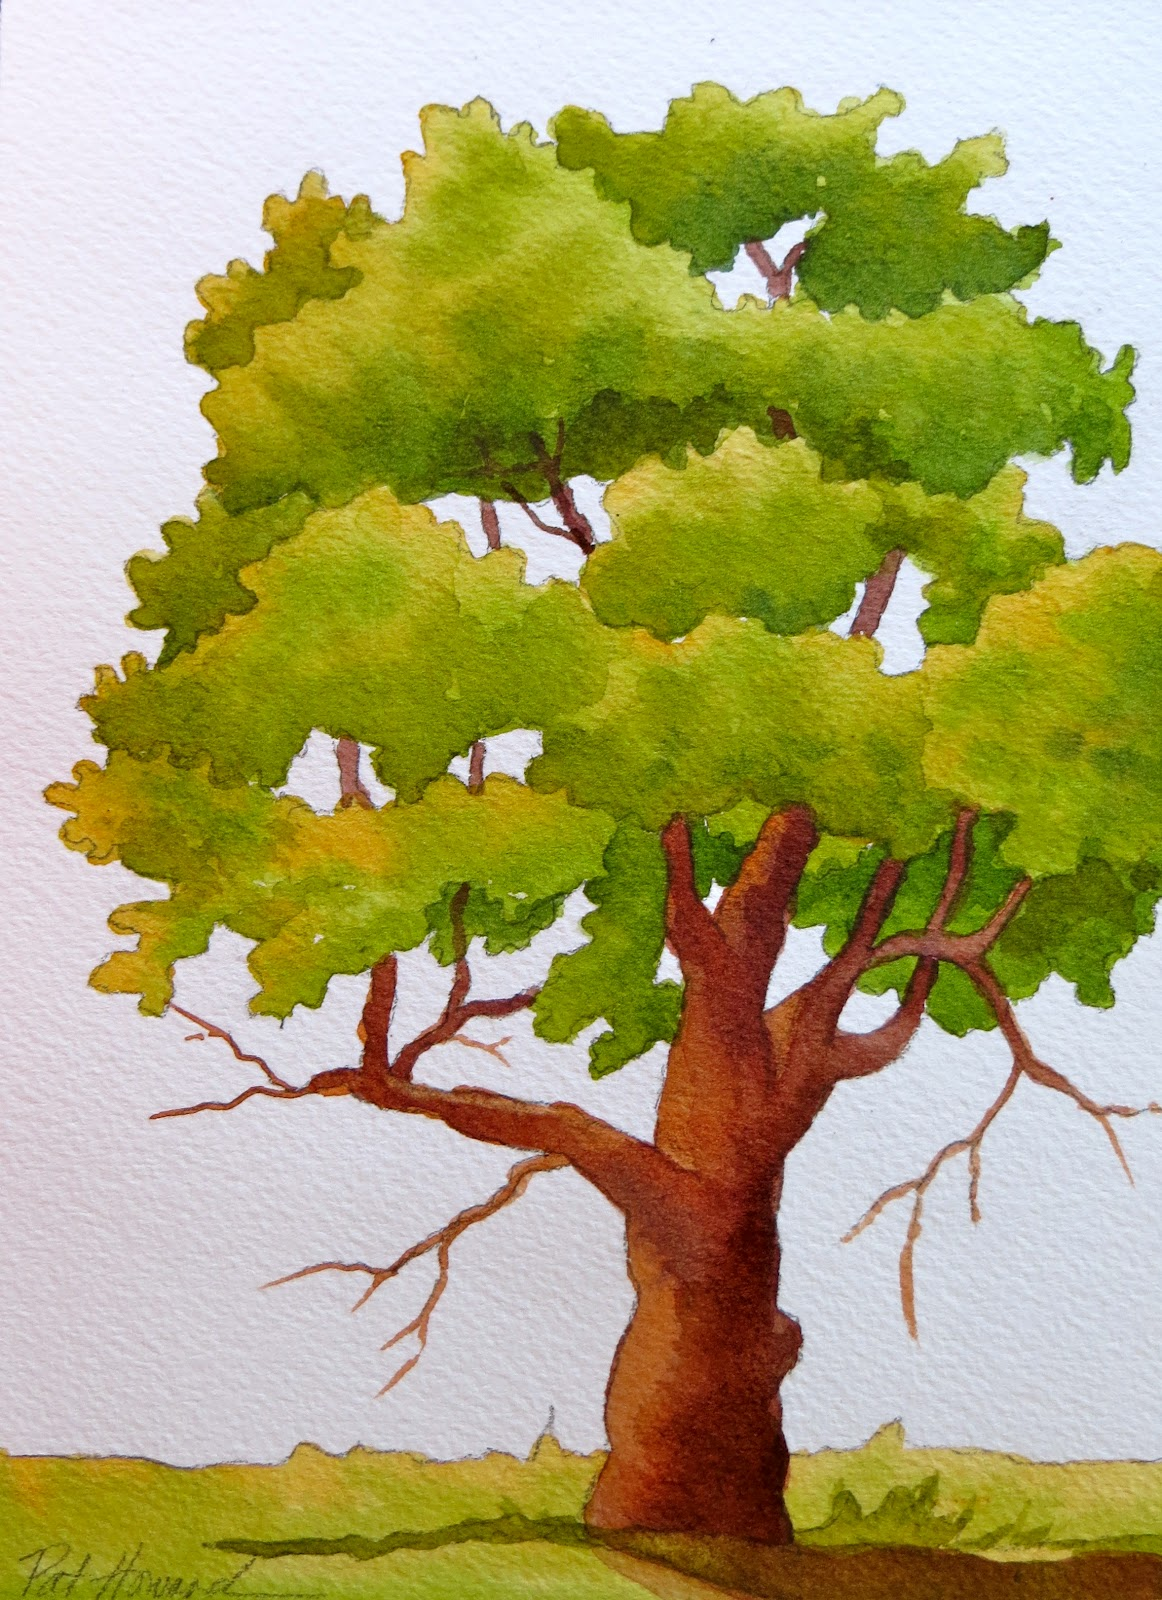 Watercolor Tree Painting - Best Painting 2018 for Tree Drawing With Watercolor  157uhy